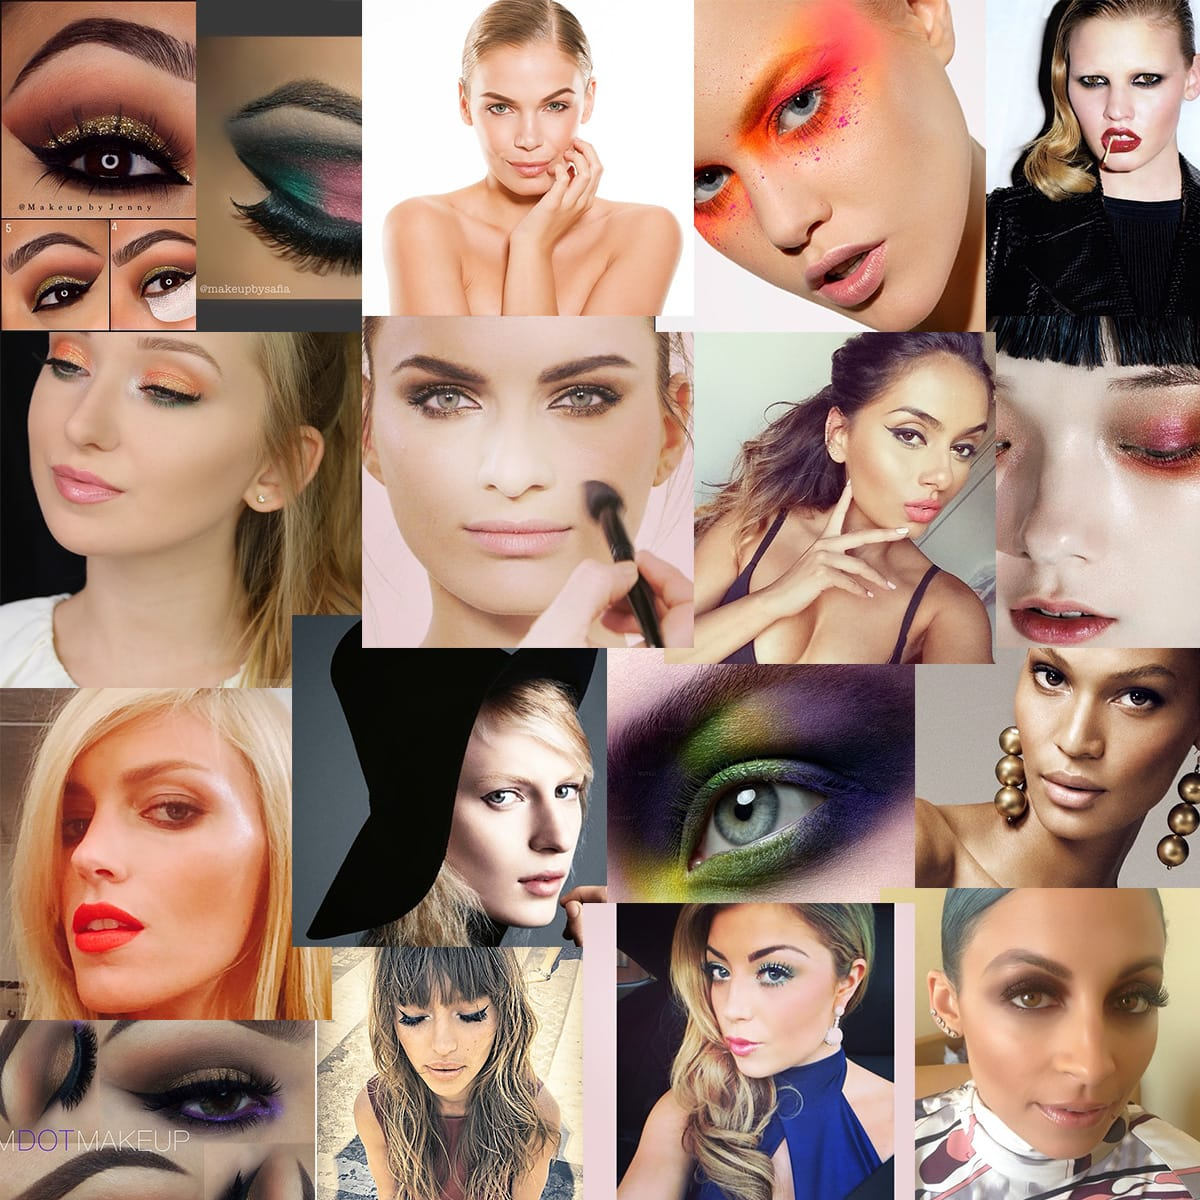 25 looks makeup artists